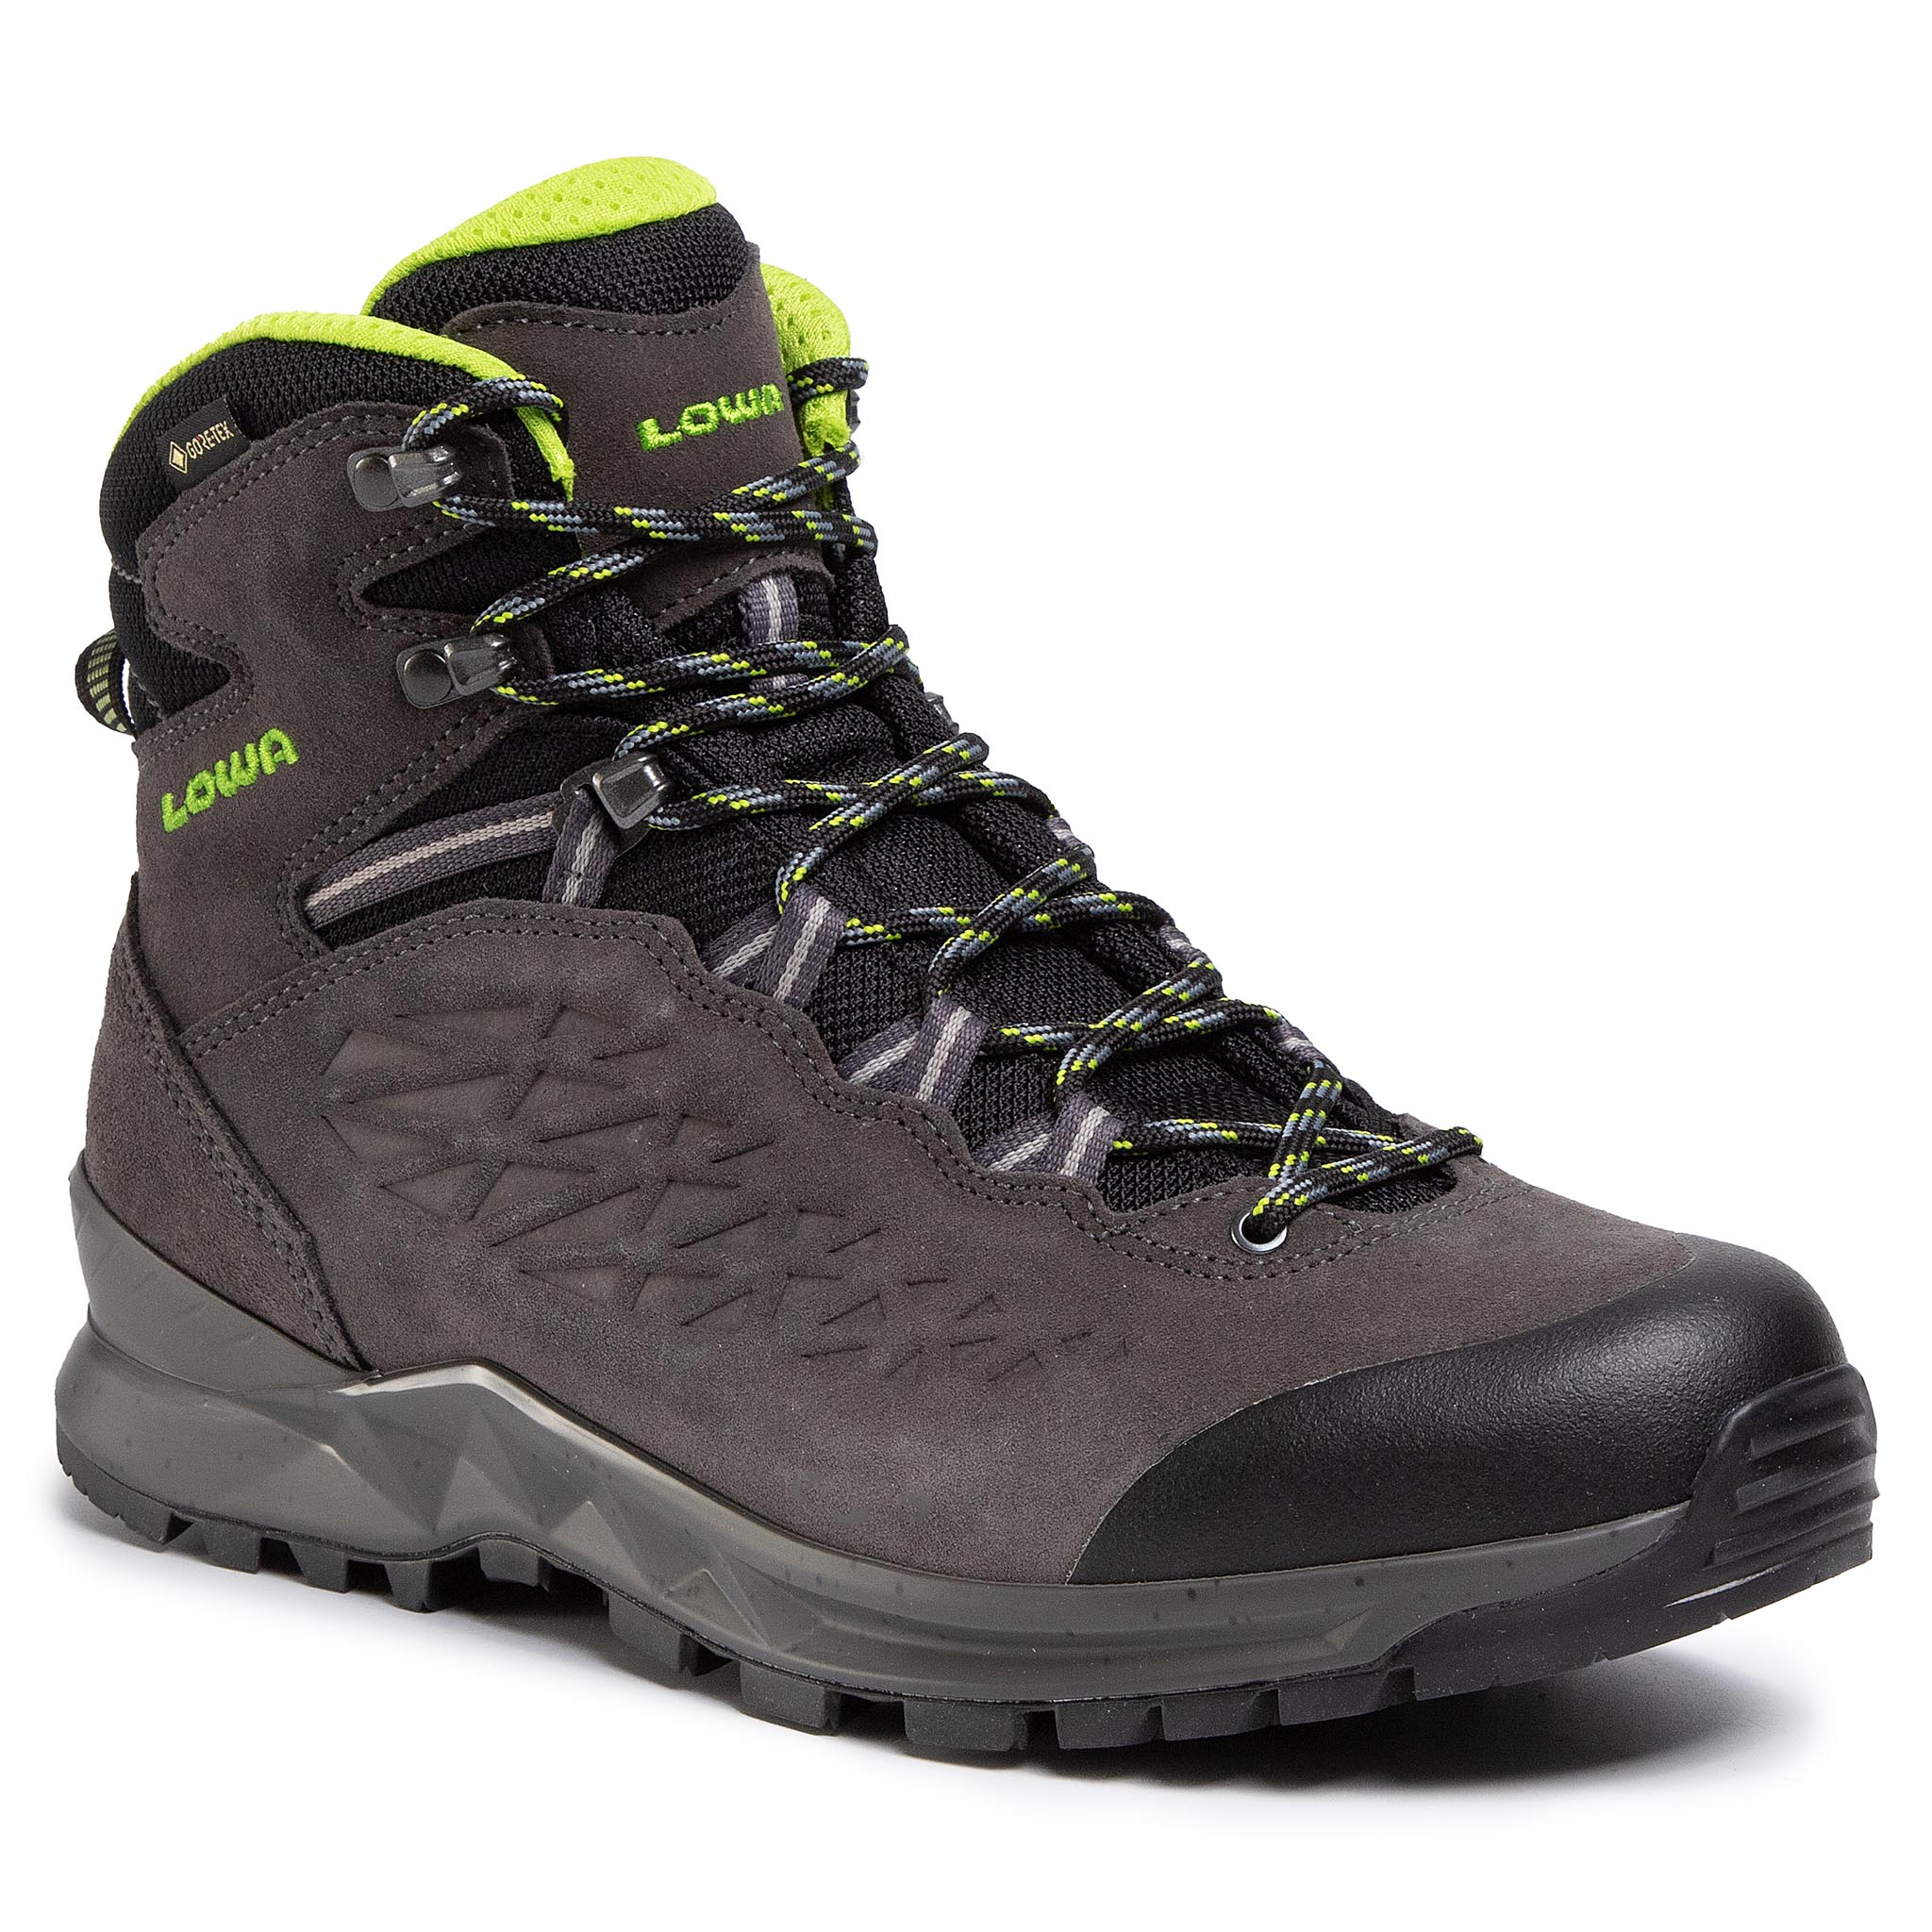 Trekkings Lowa - Explorer Gtx Mid Gore-Tex 210712 Anthracite/Limone 9702 imagine epantofi.ro 2021